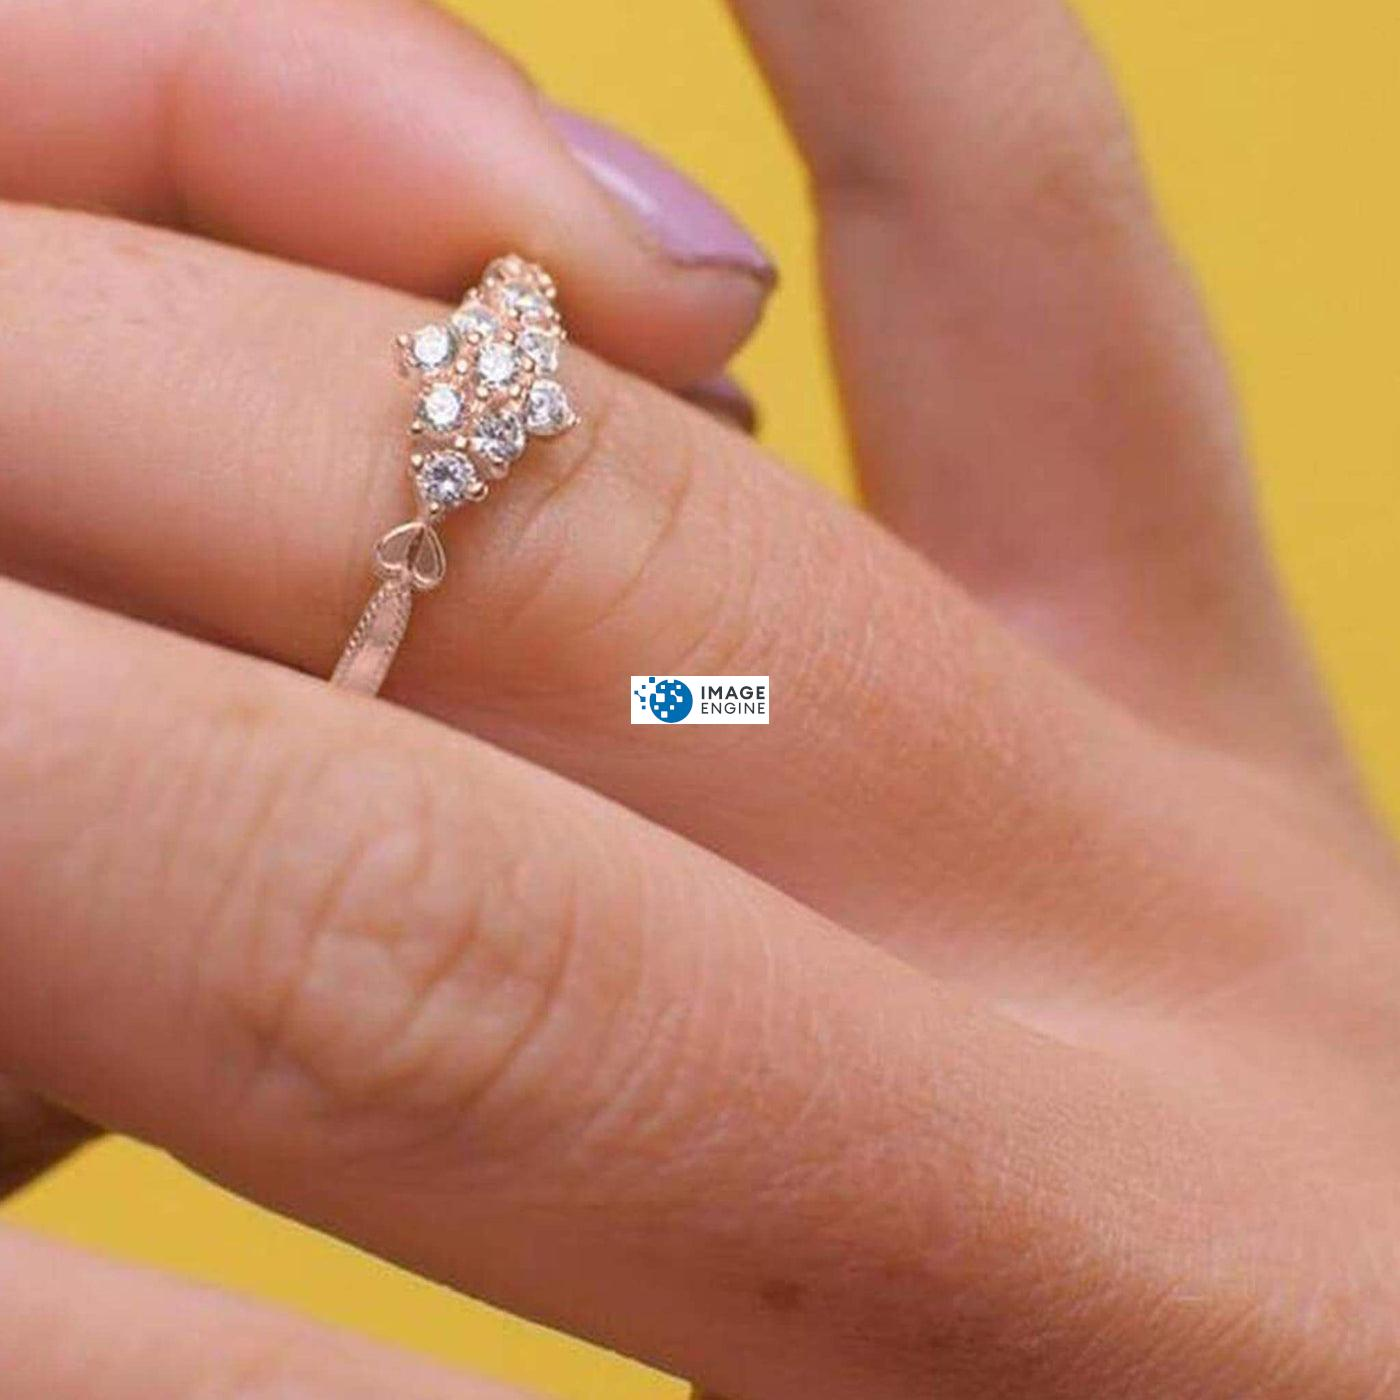 Sarah Snowflake Dainty Ring - Wearing on Ring Finger on Higher Angle View - 18K Rose Gold Vermeil